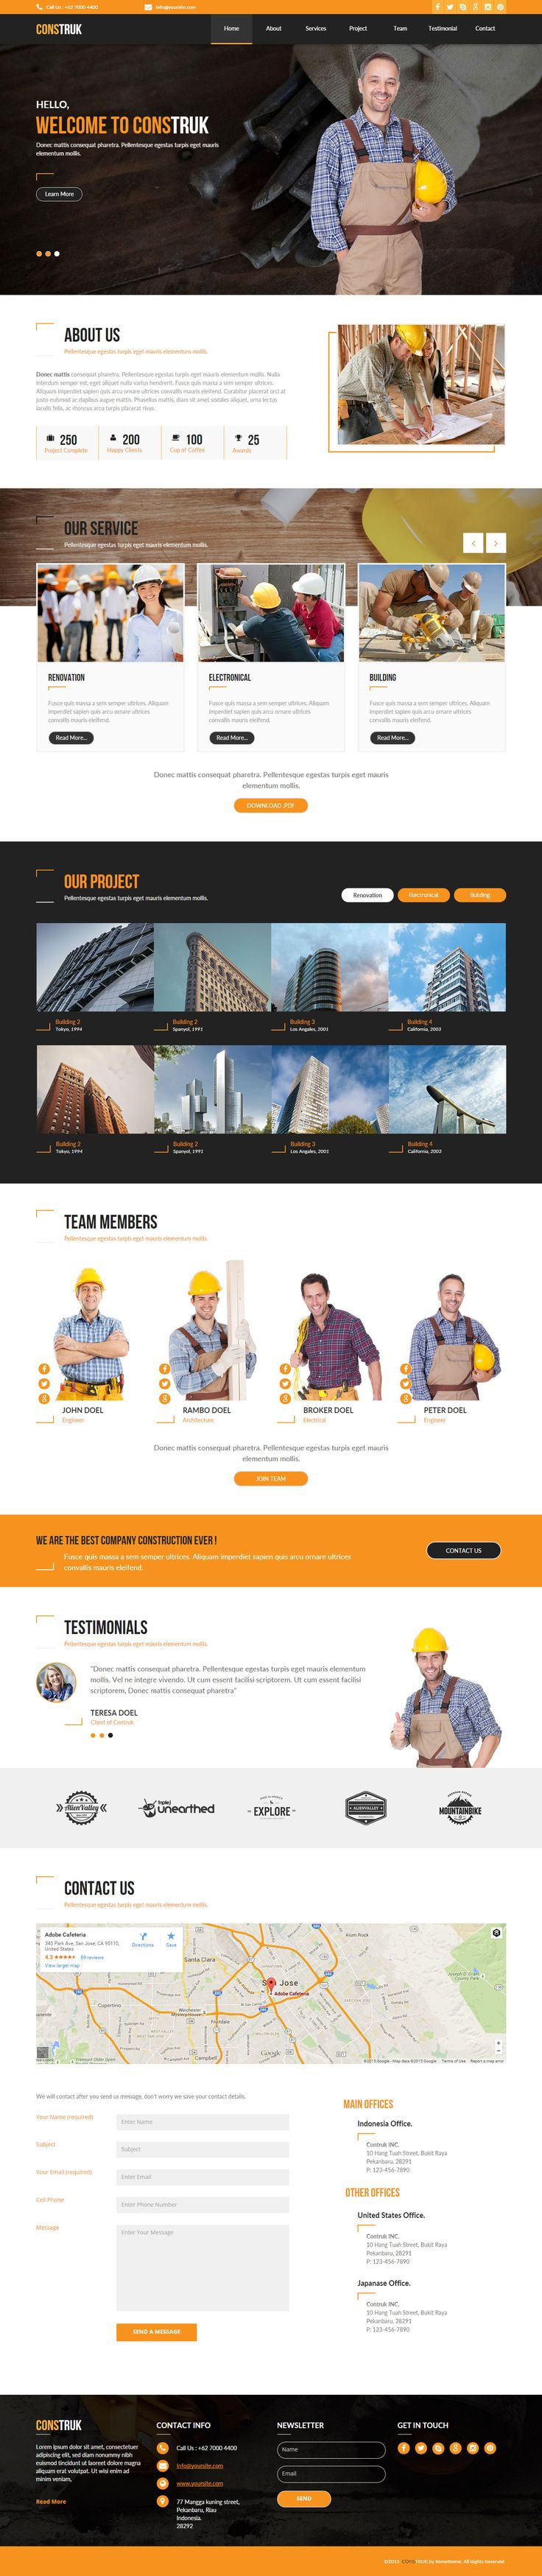 Construk - Construction Business #AdobeMuse #Template. Available on #themeforest by rometheme.net